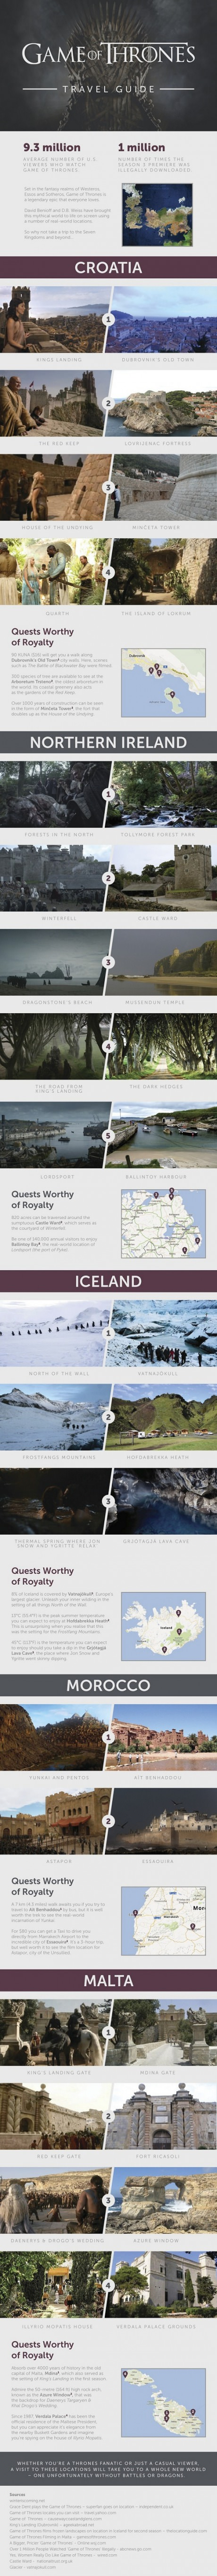 funny-picture-game-of-thrones-travel-guide